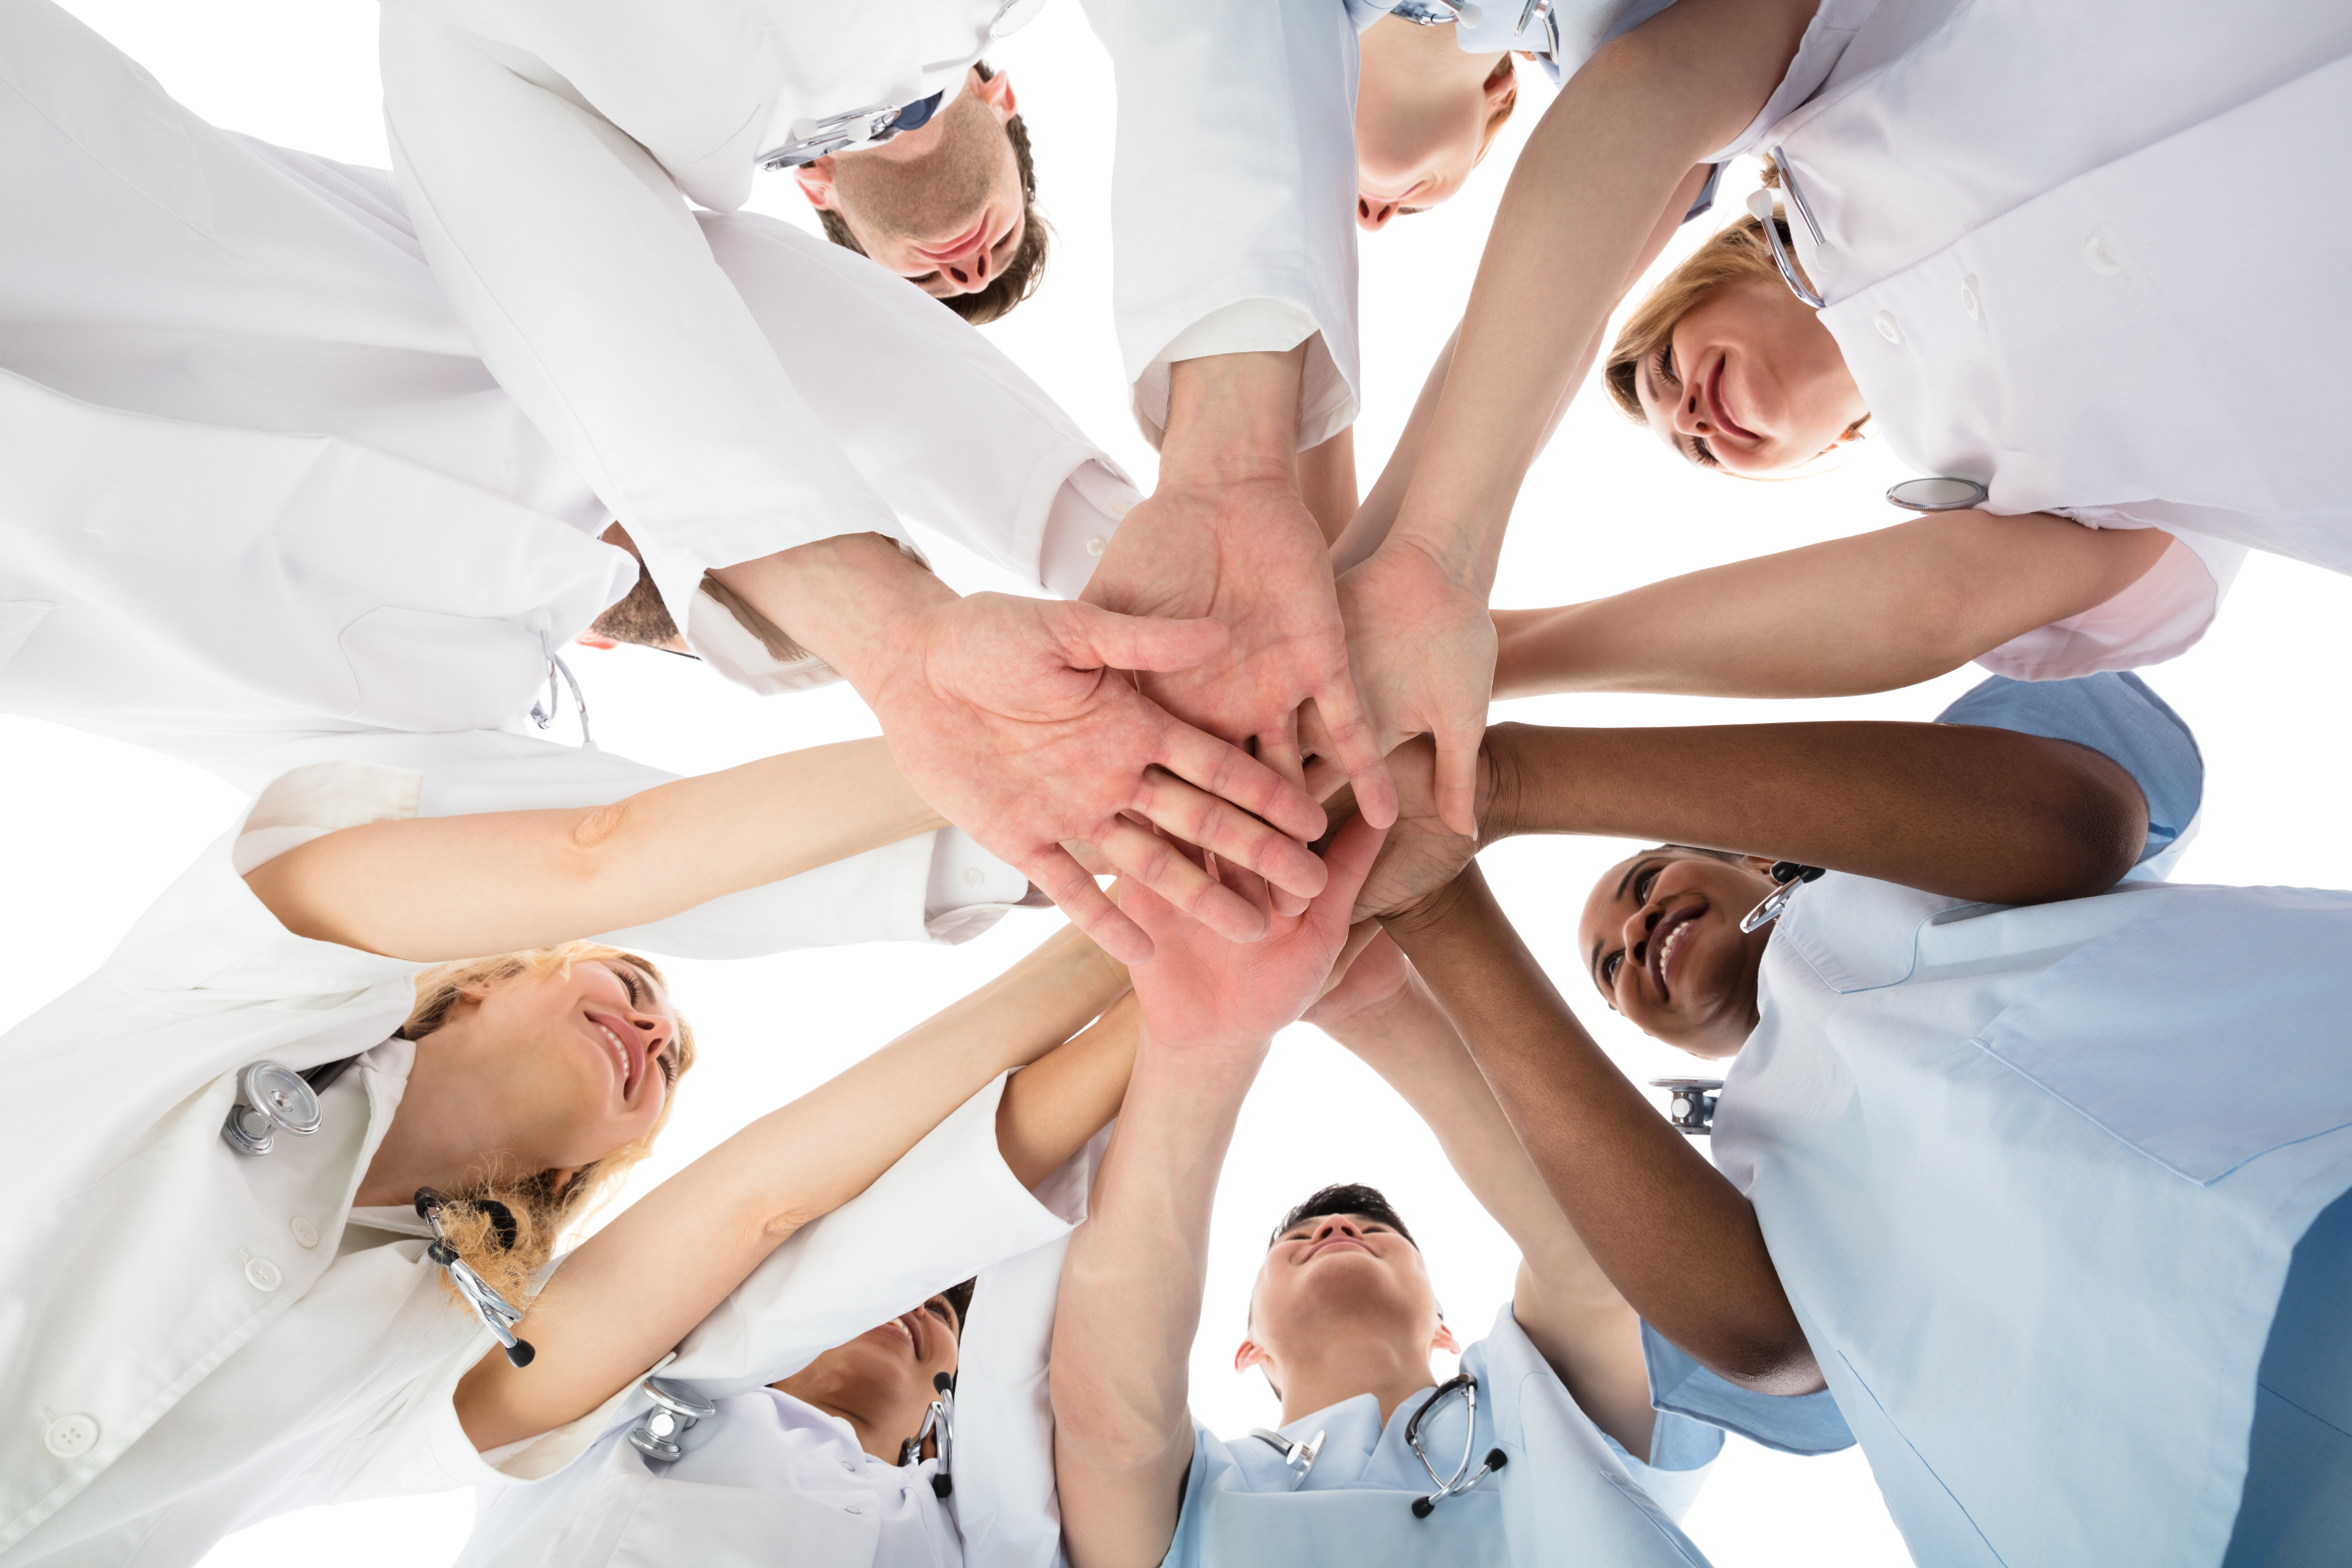 Low Angle View Of Smiling Medical Team Stacking Hands